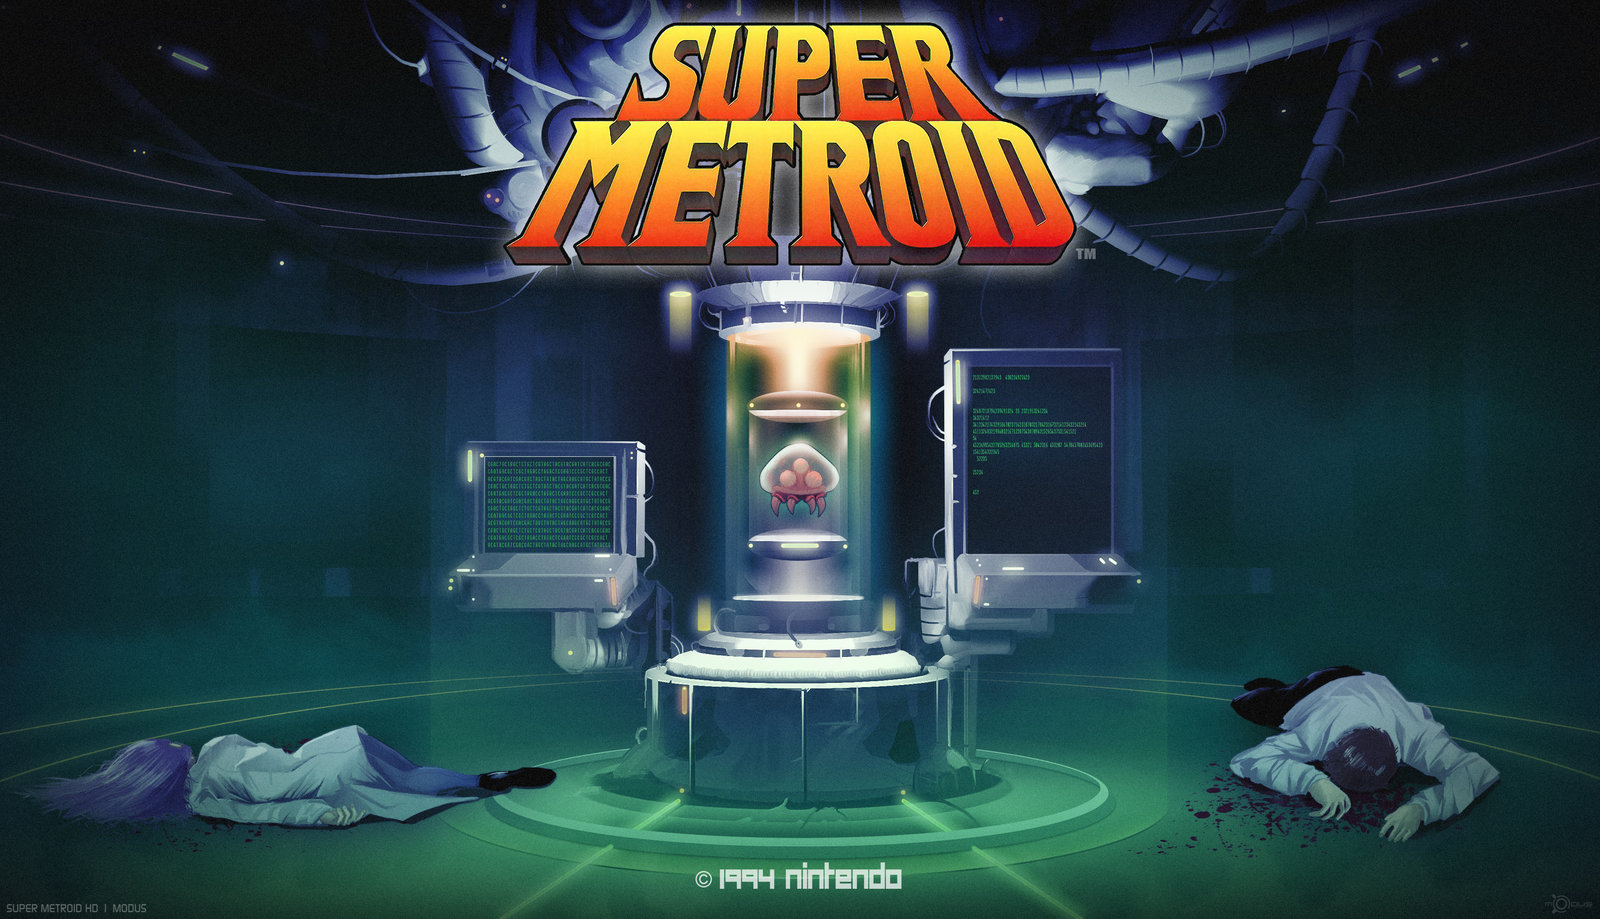 super_metroid_hd_by_modusprodukt-d427im7